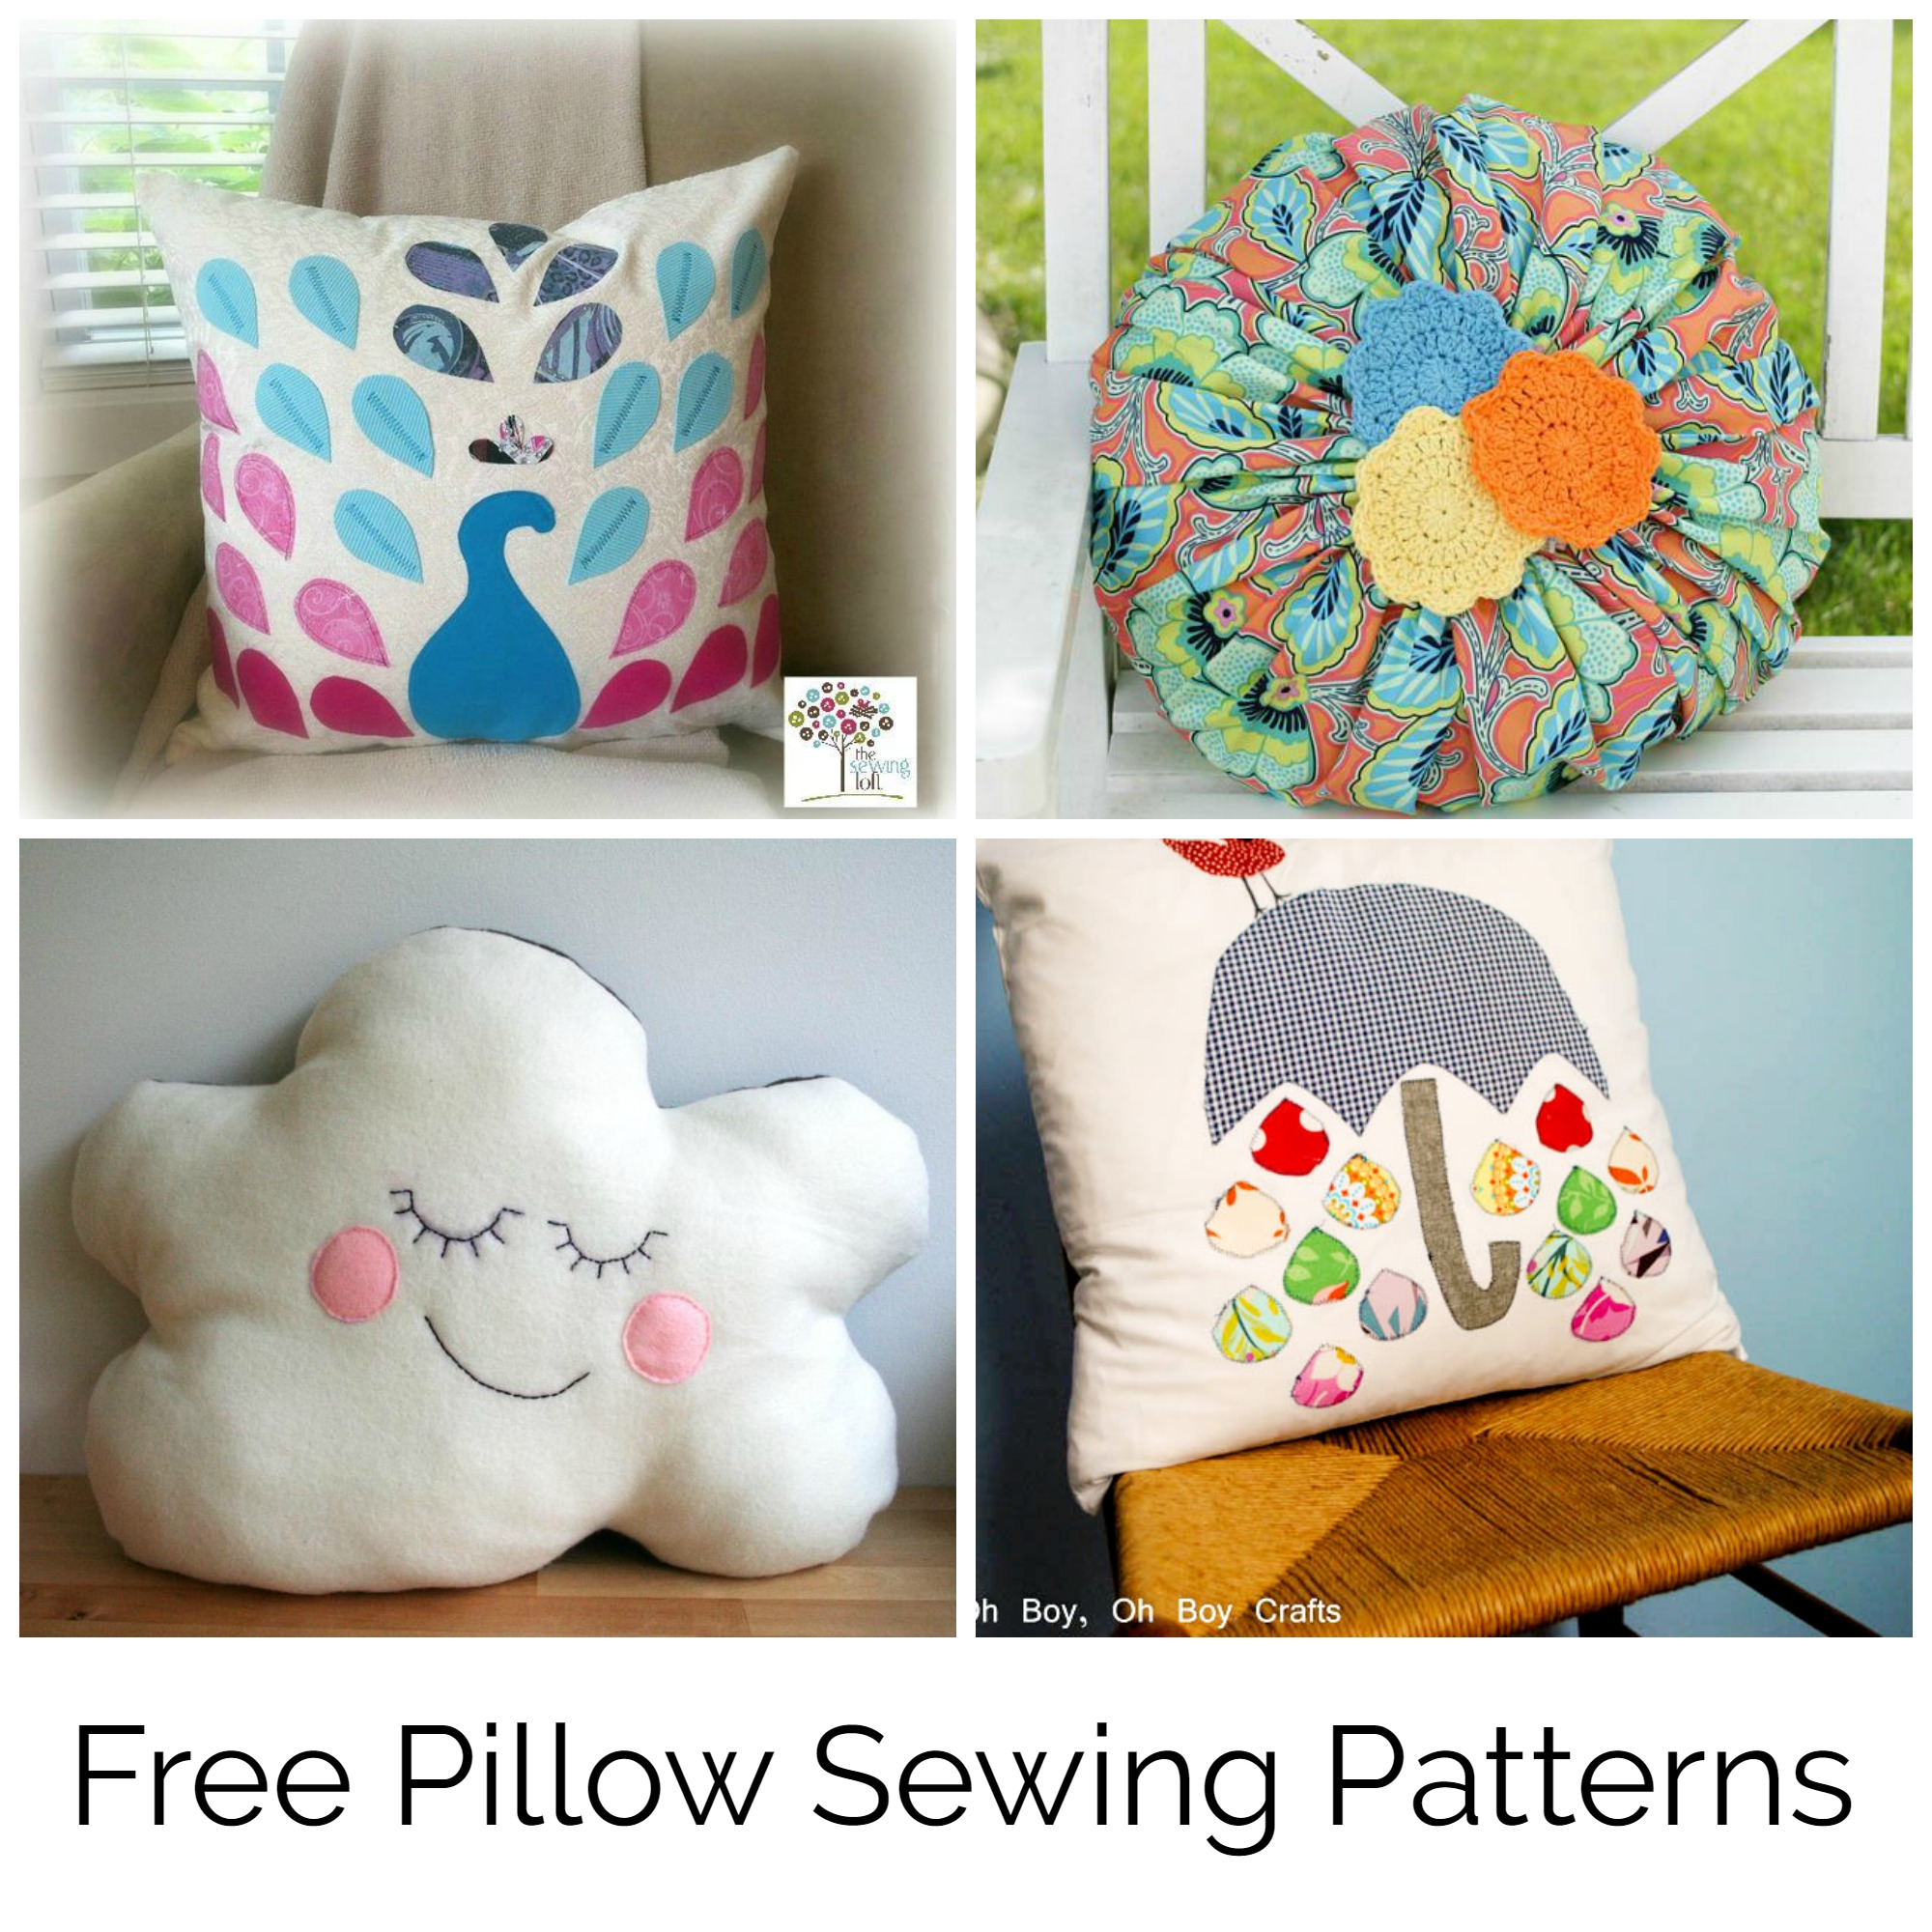 Free Pillow Sewing Patterns